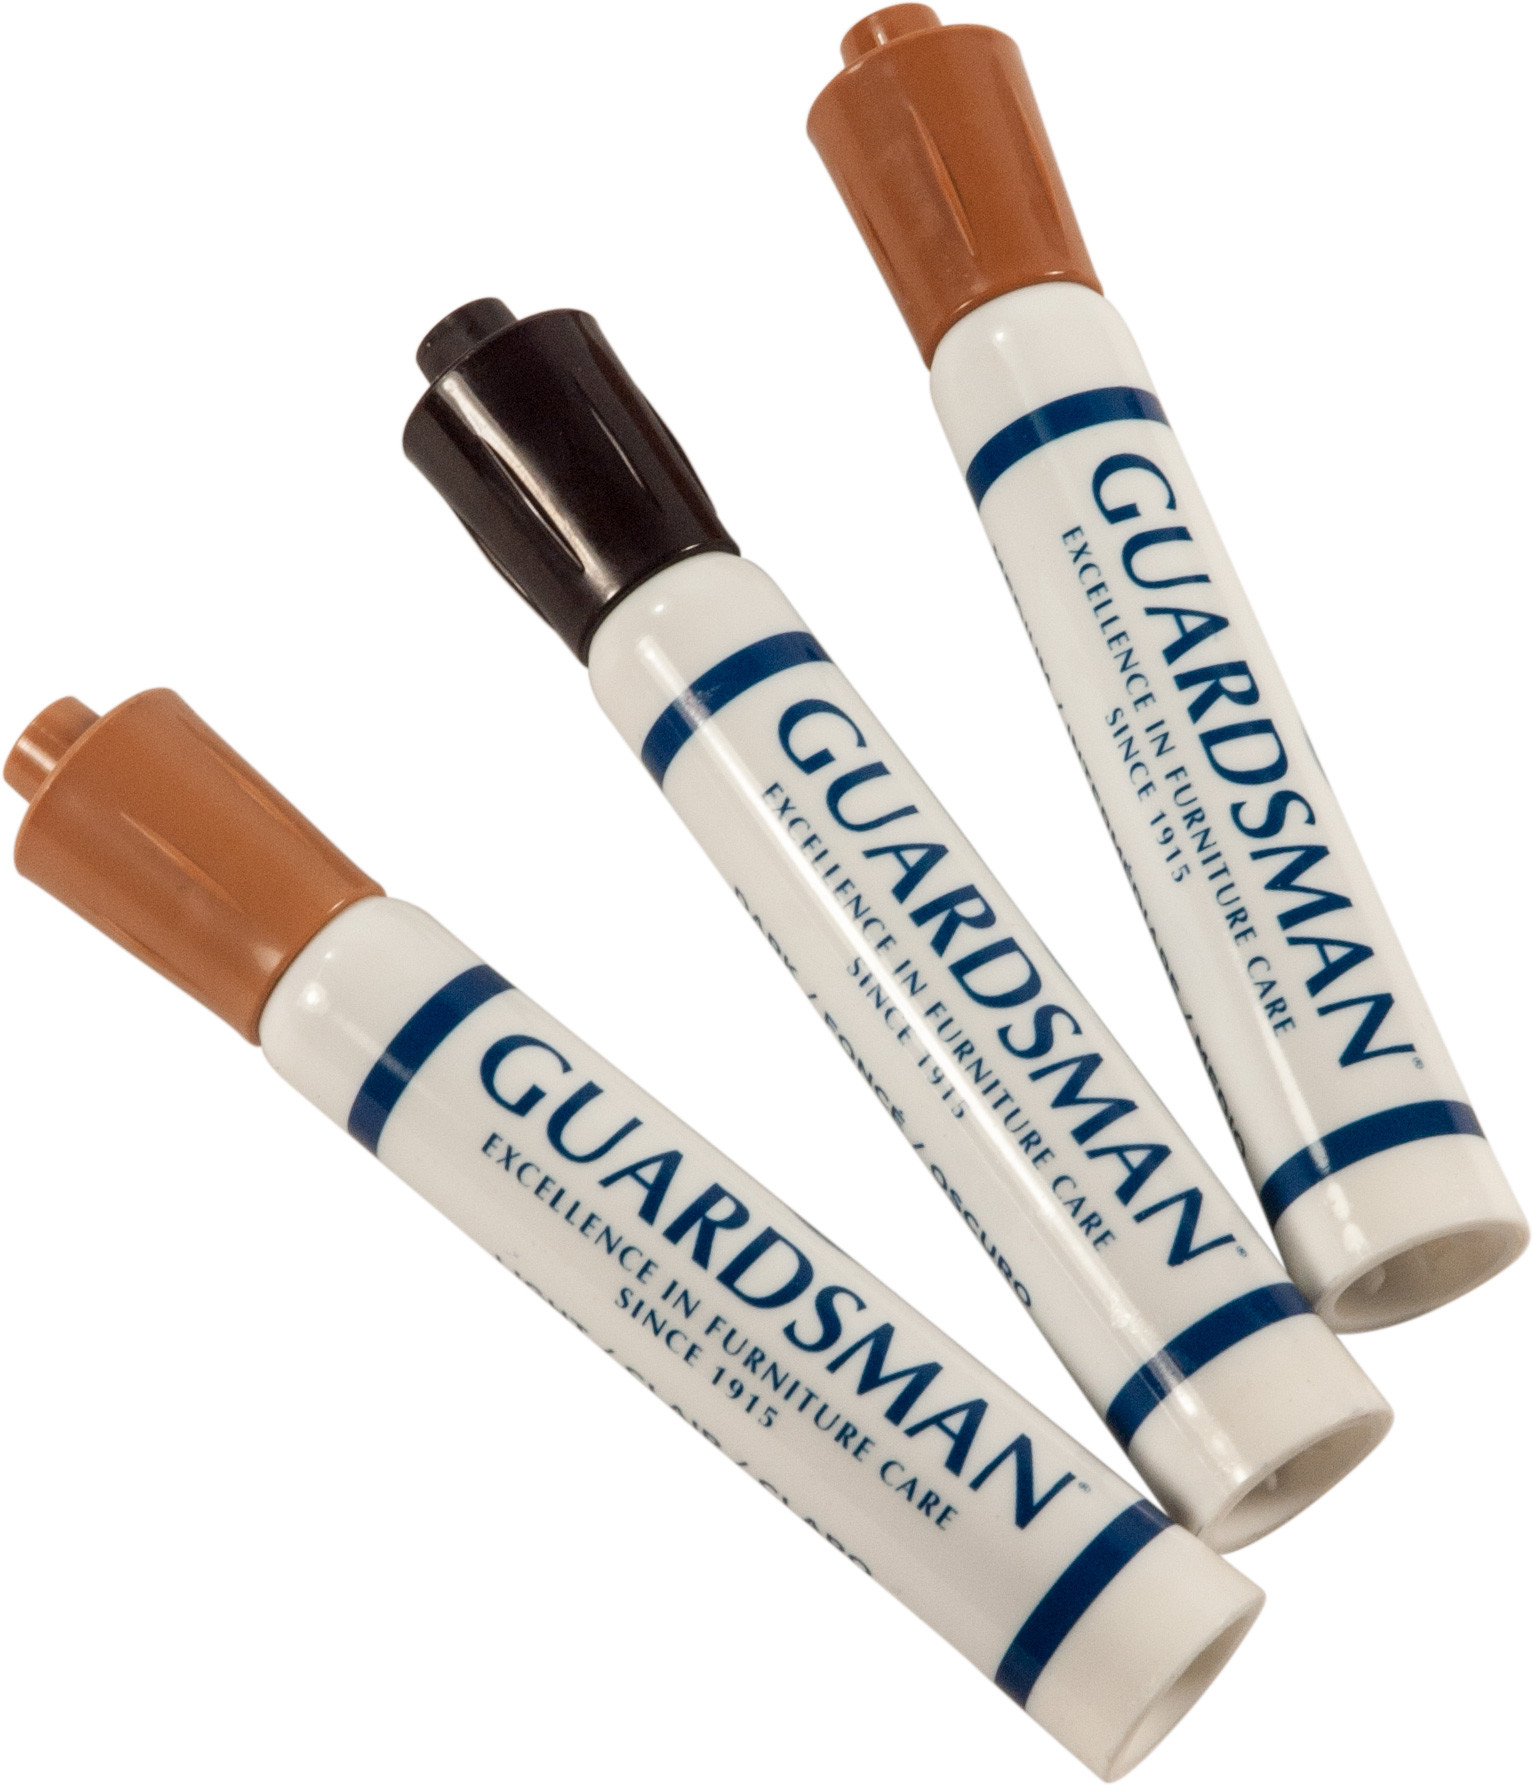 Surprising Guardsman 3850 12 Non Toxic Touch Up Kit Beutiful Home Inspiration Cosmmahrainfo